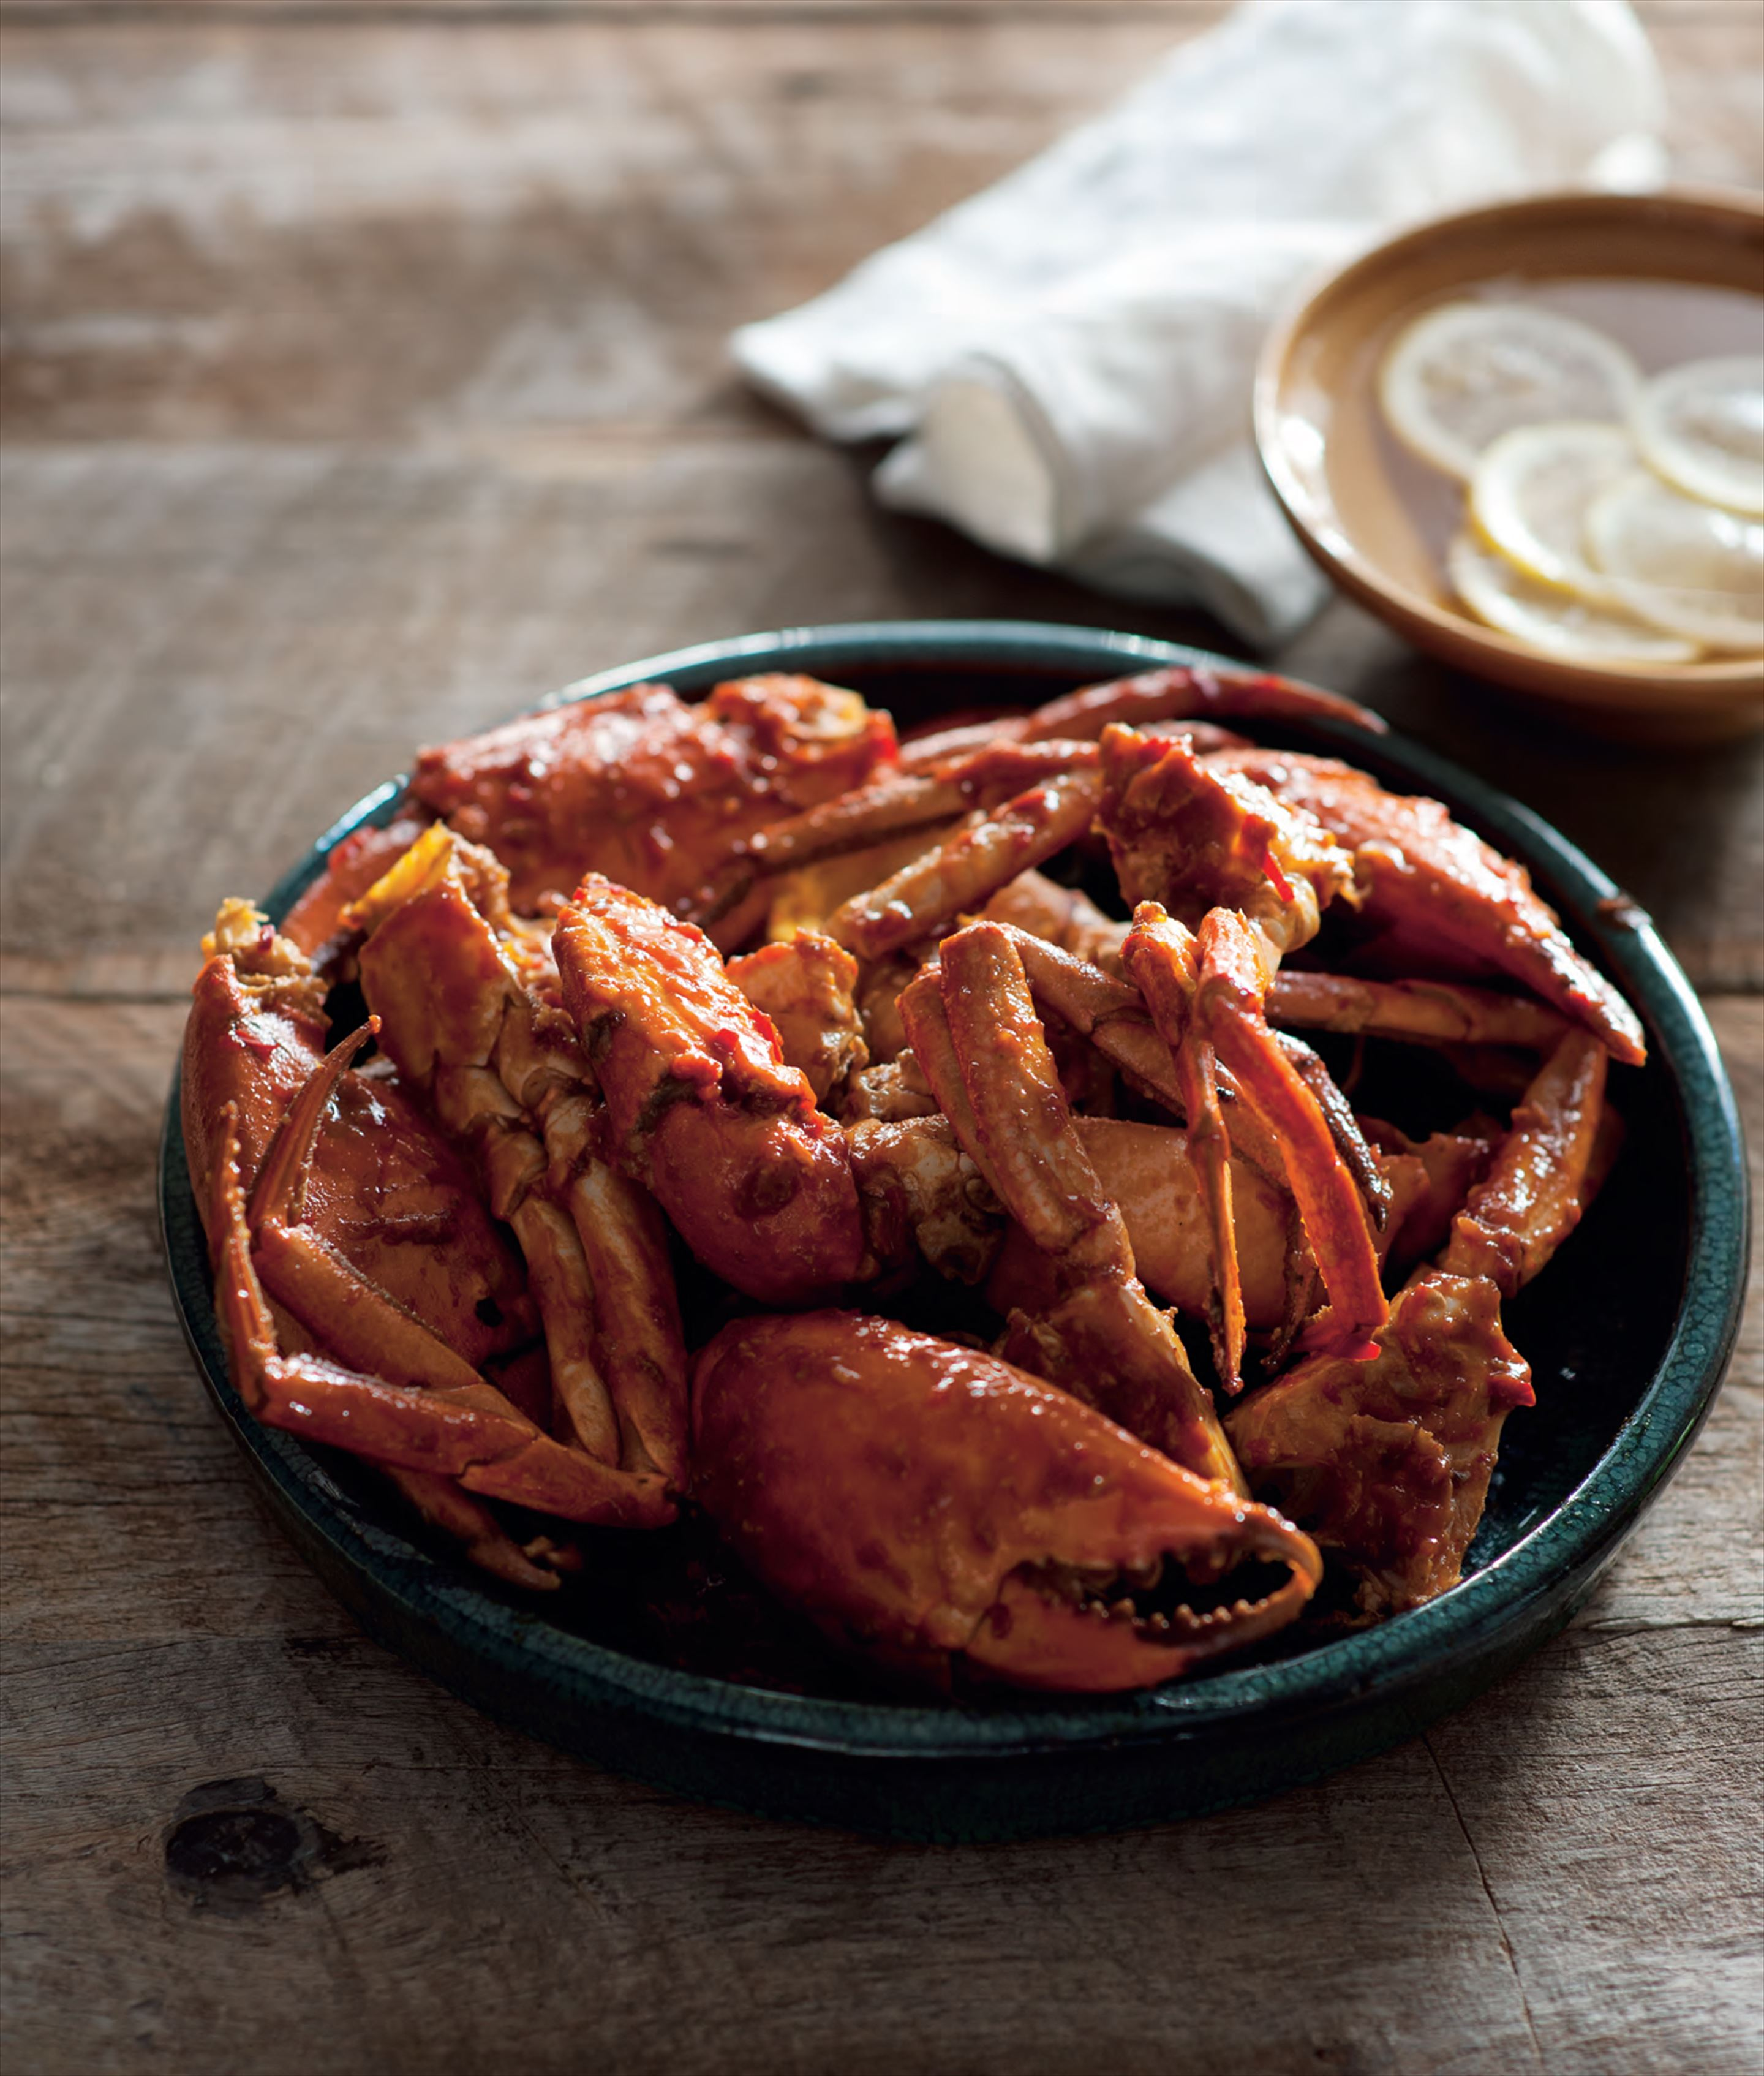 Fried chilli crabs